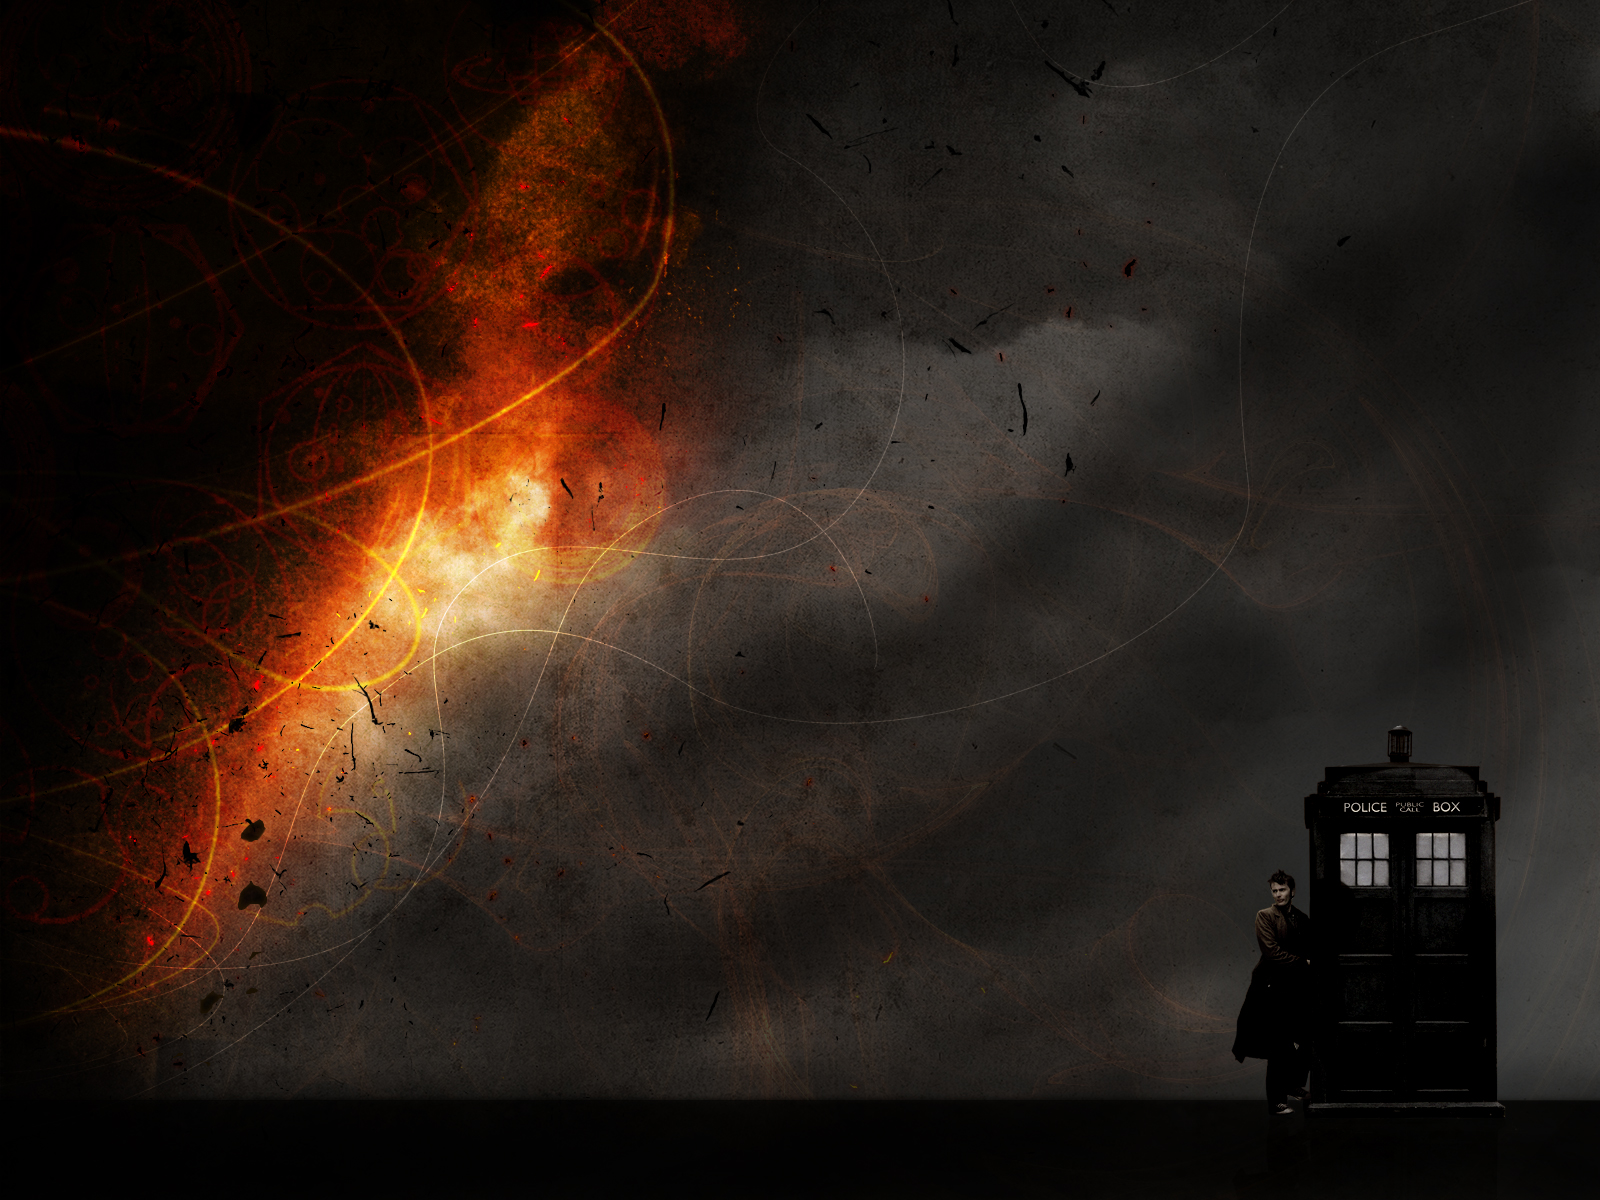 Kasterborous Doctor Who News and Reviews Where to Find Doctor Who 1600x1200